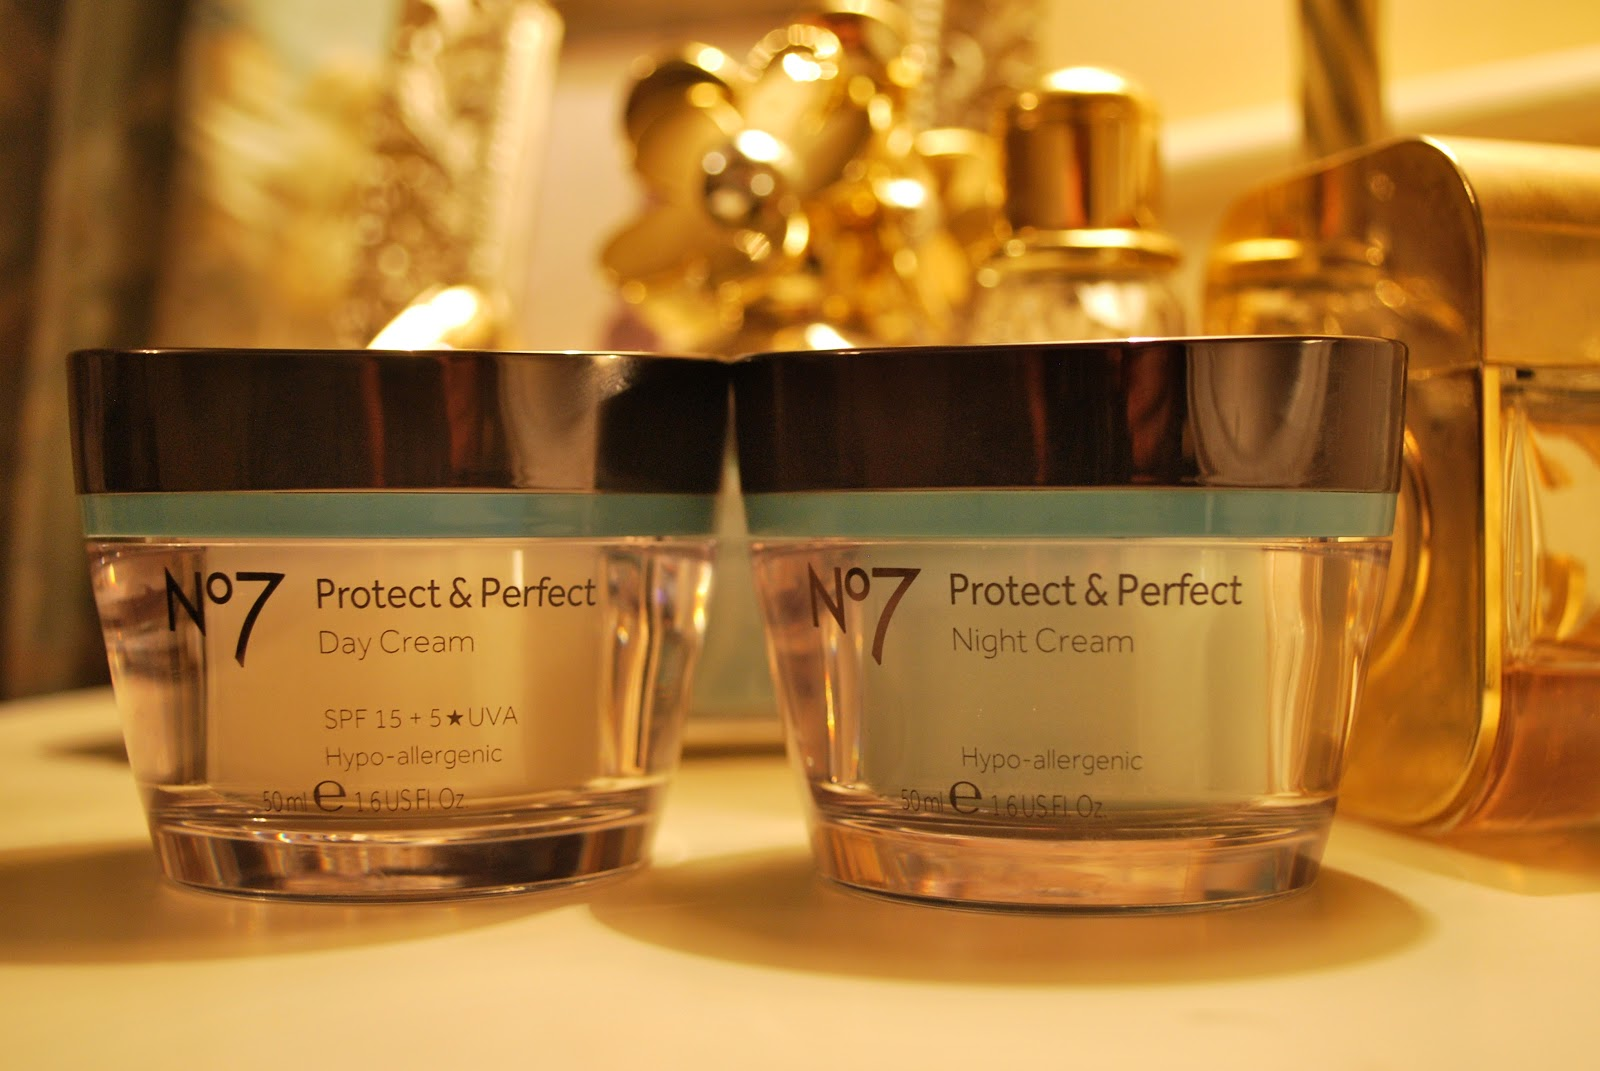 No7 Protect & Perfect Day Cream and Night Cream